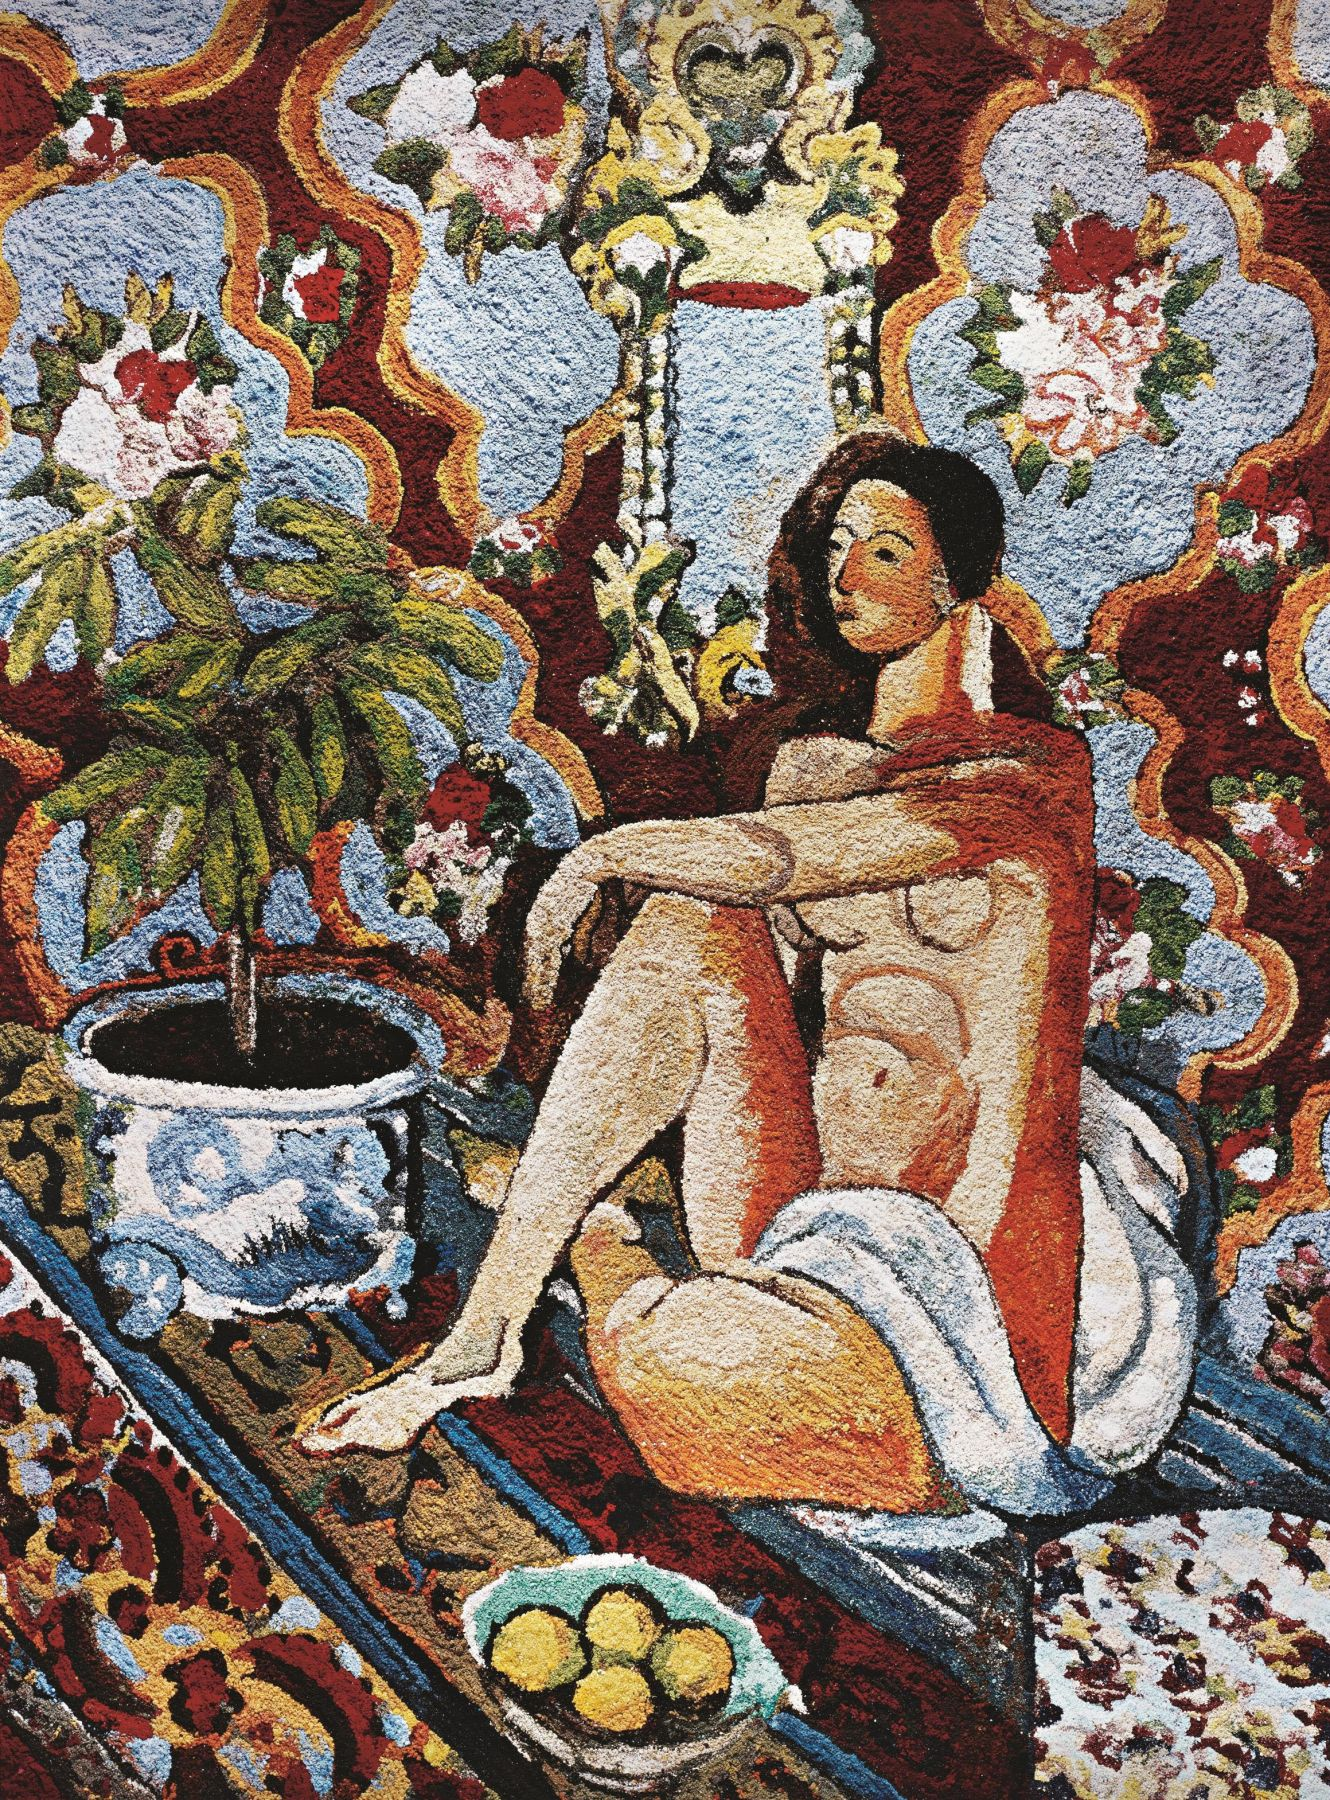 vik muniz decorative Figure on Ornamental Background, After Matisse, from the Pictures of Pigment series